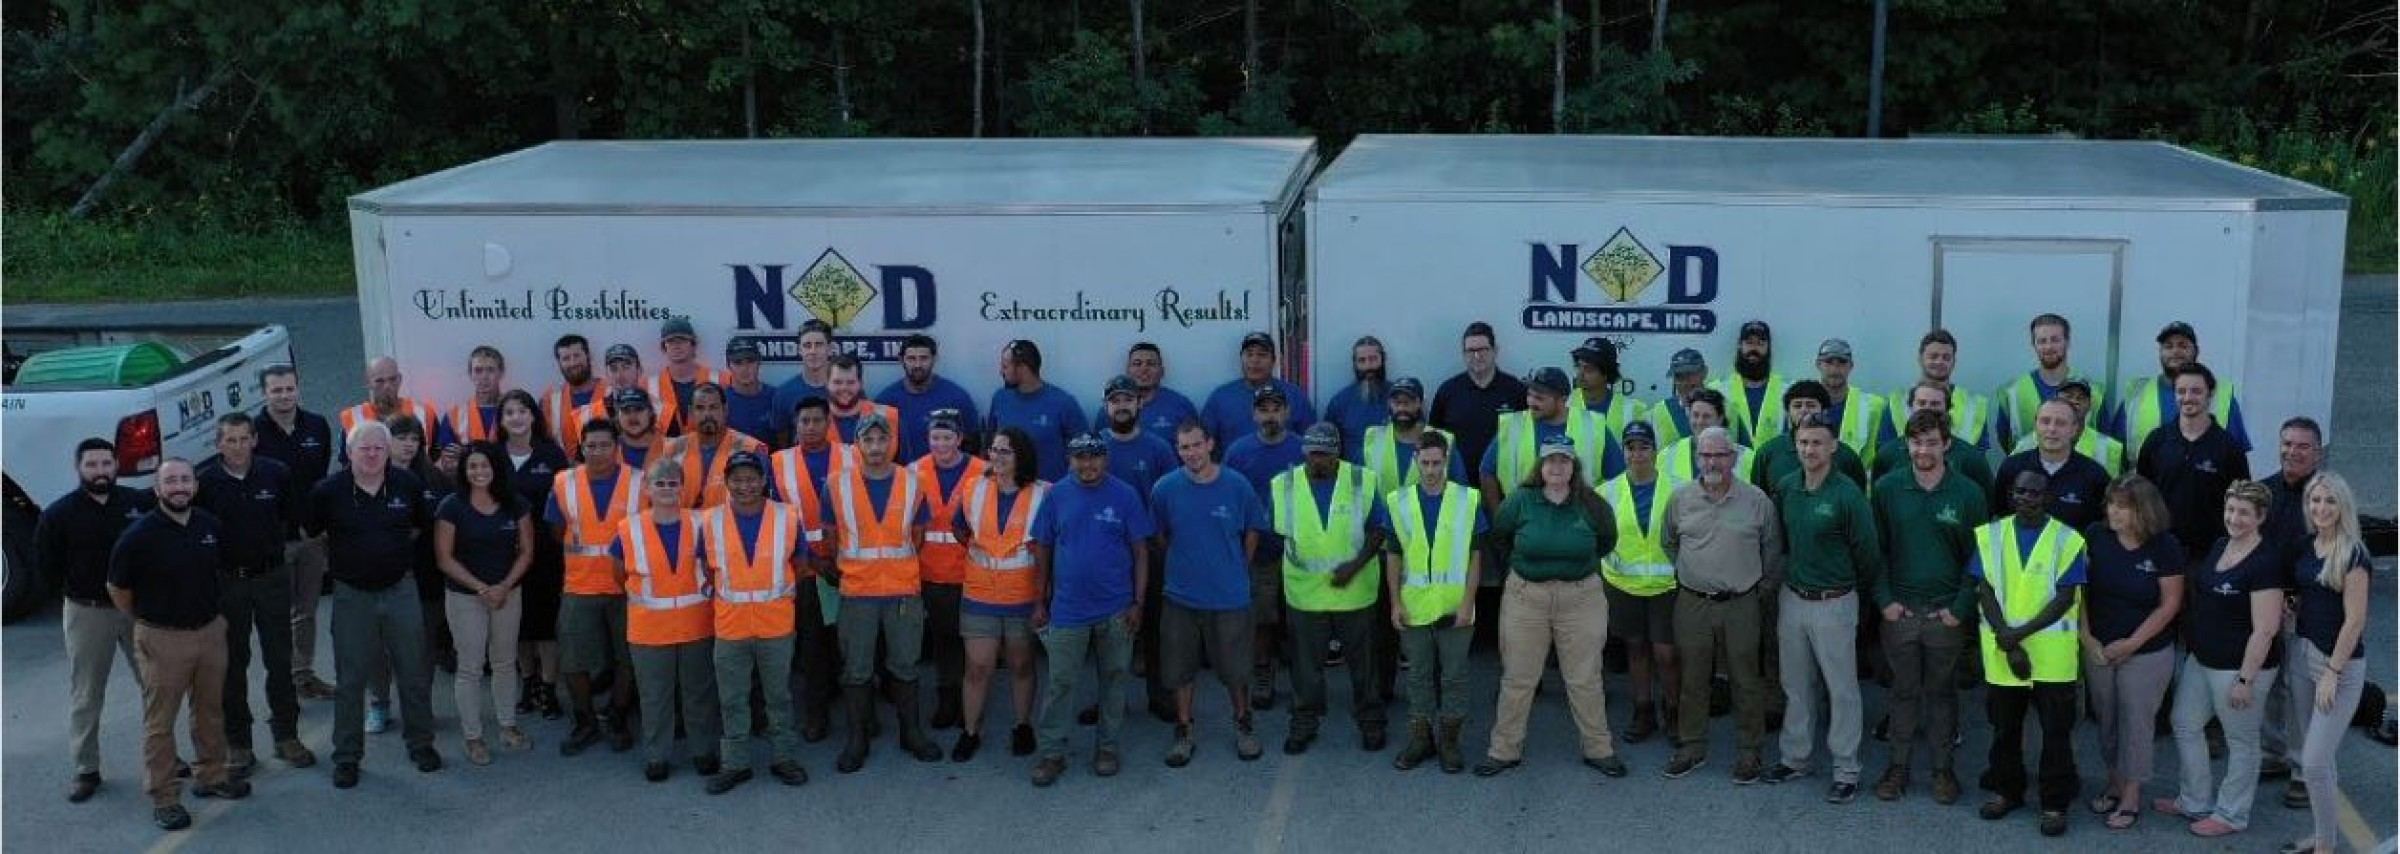 Full landscape contractors team